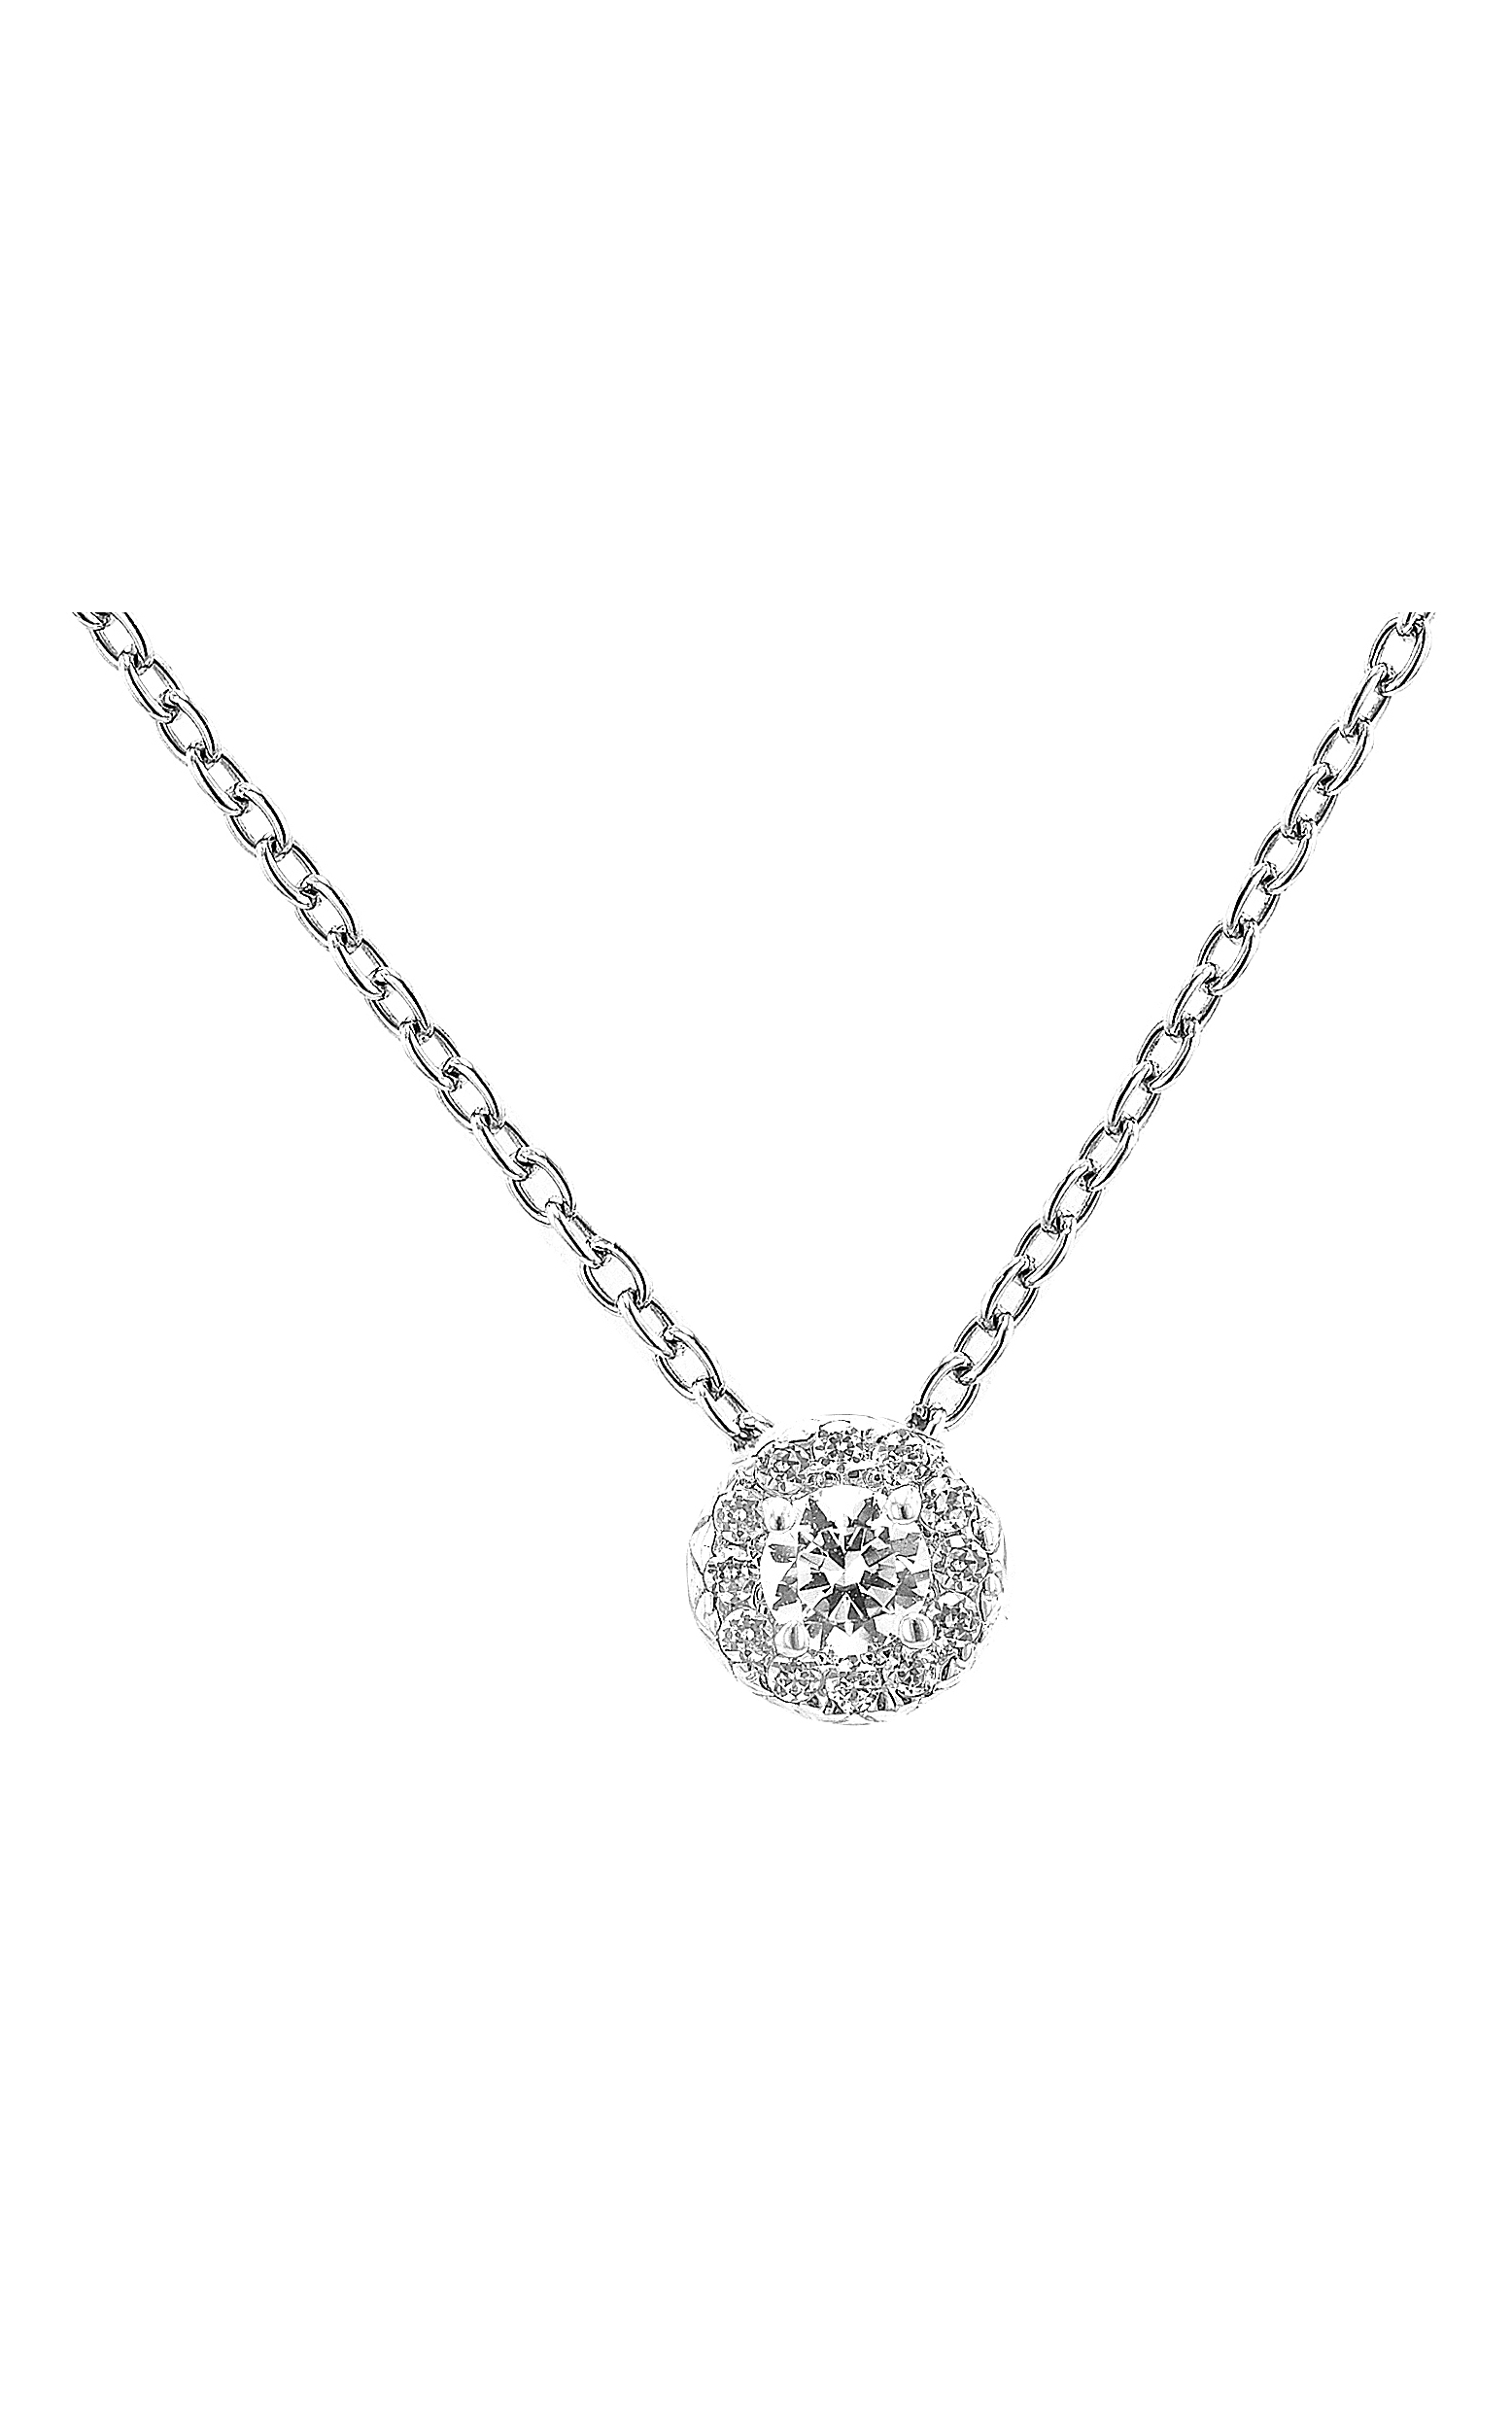 Beny Sofer Necklaces Necklace SP12-144-1B product image